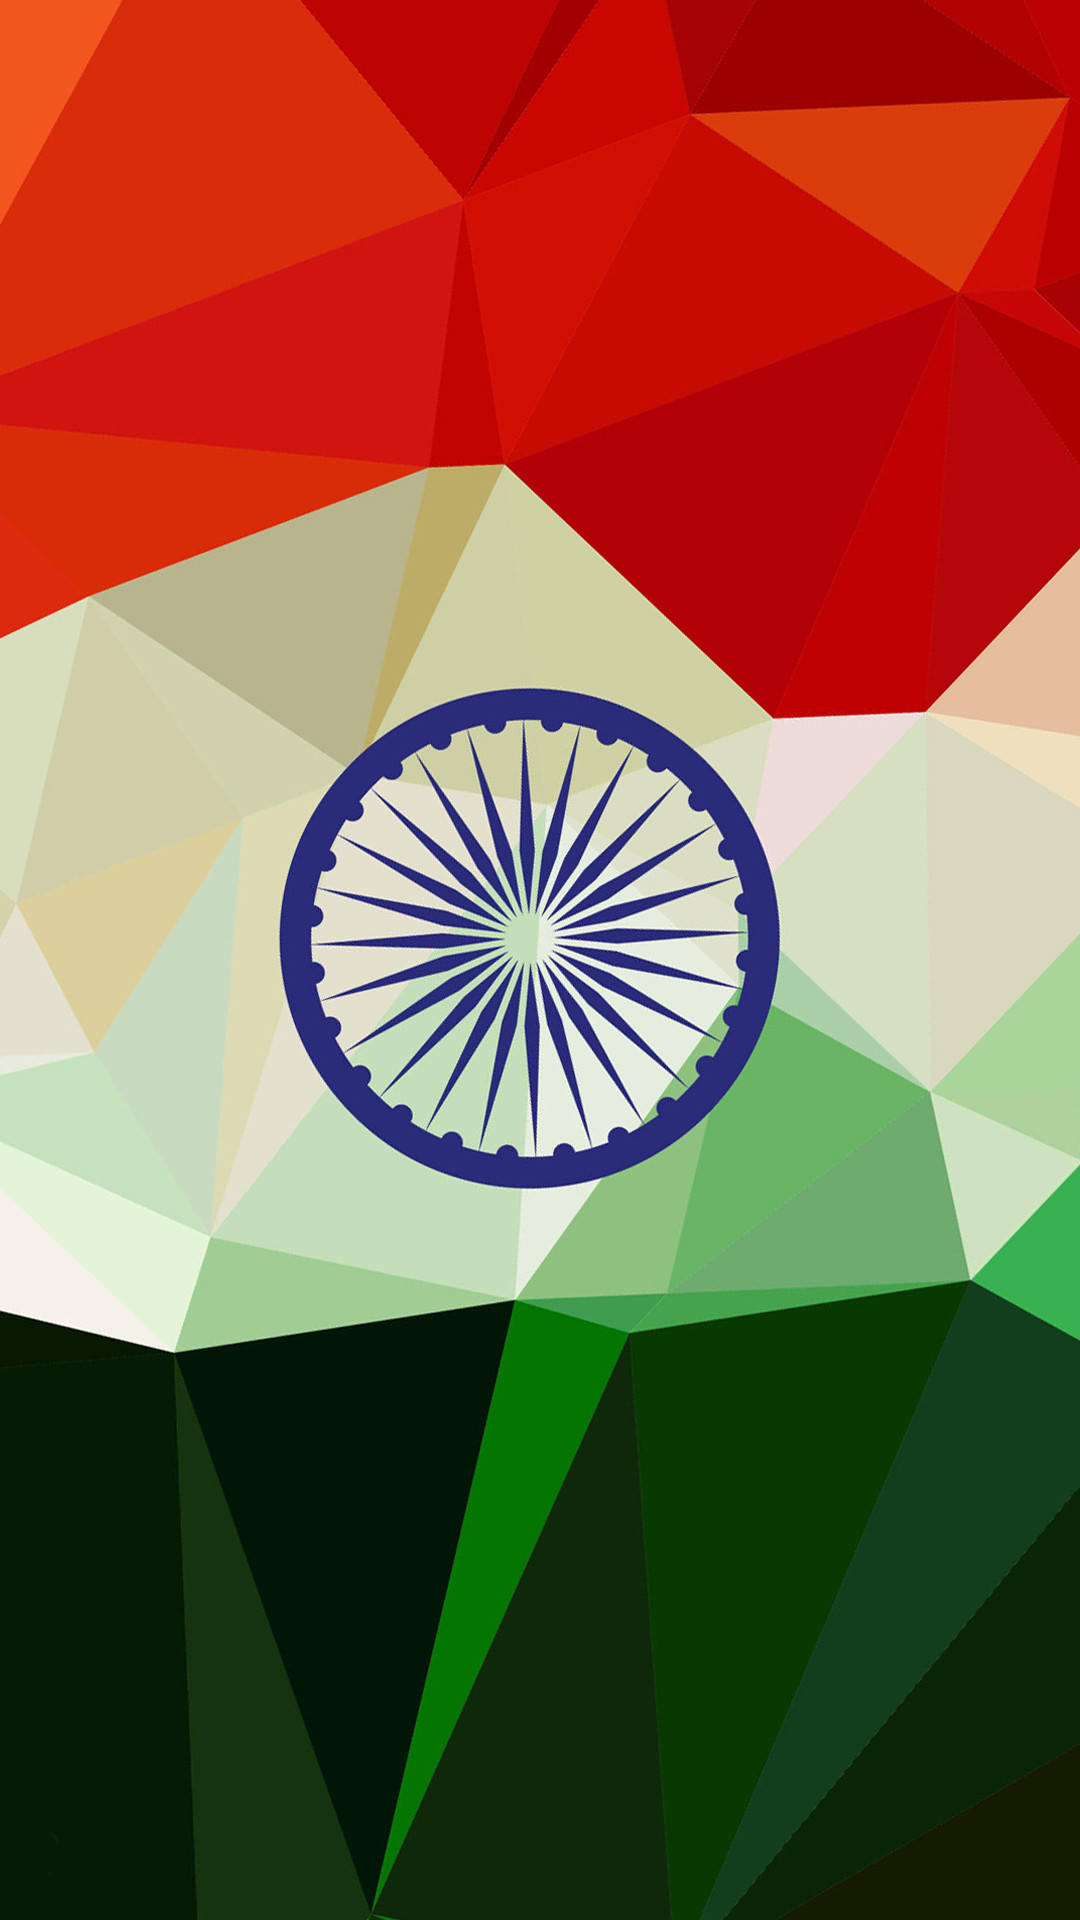 flag indian india national whatsapp hd wallpapers resolution background flags army vector independence 3d diamond republic tiranga allpicts mobile desktop